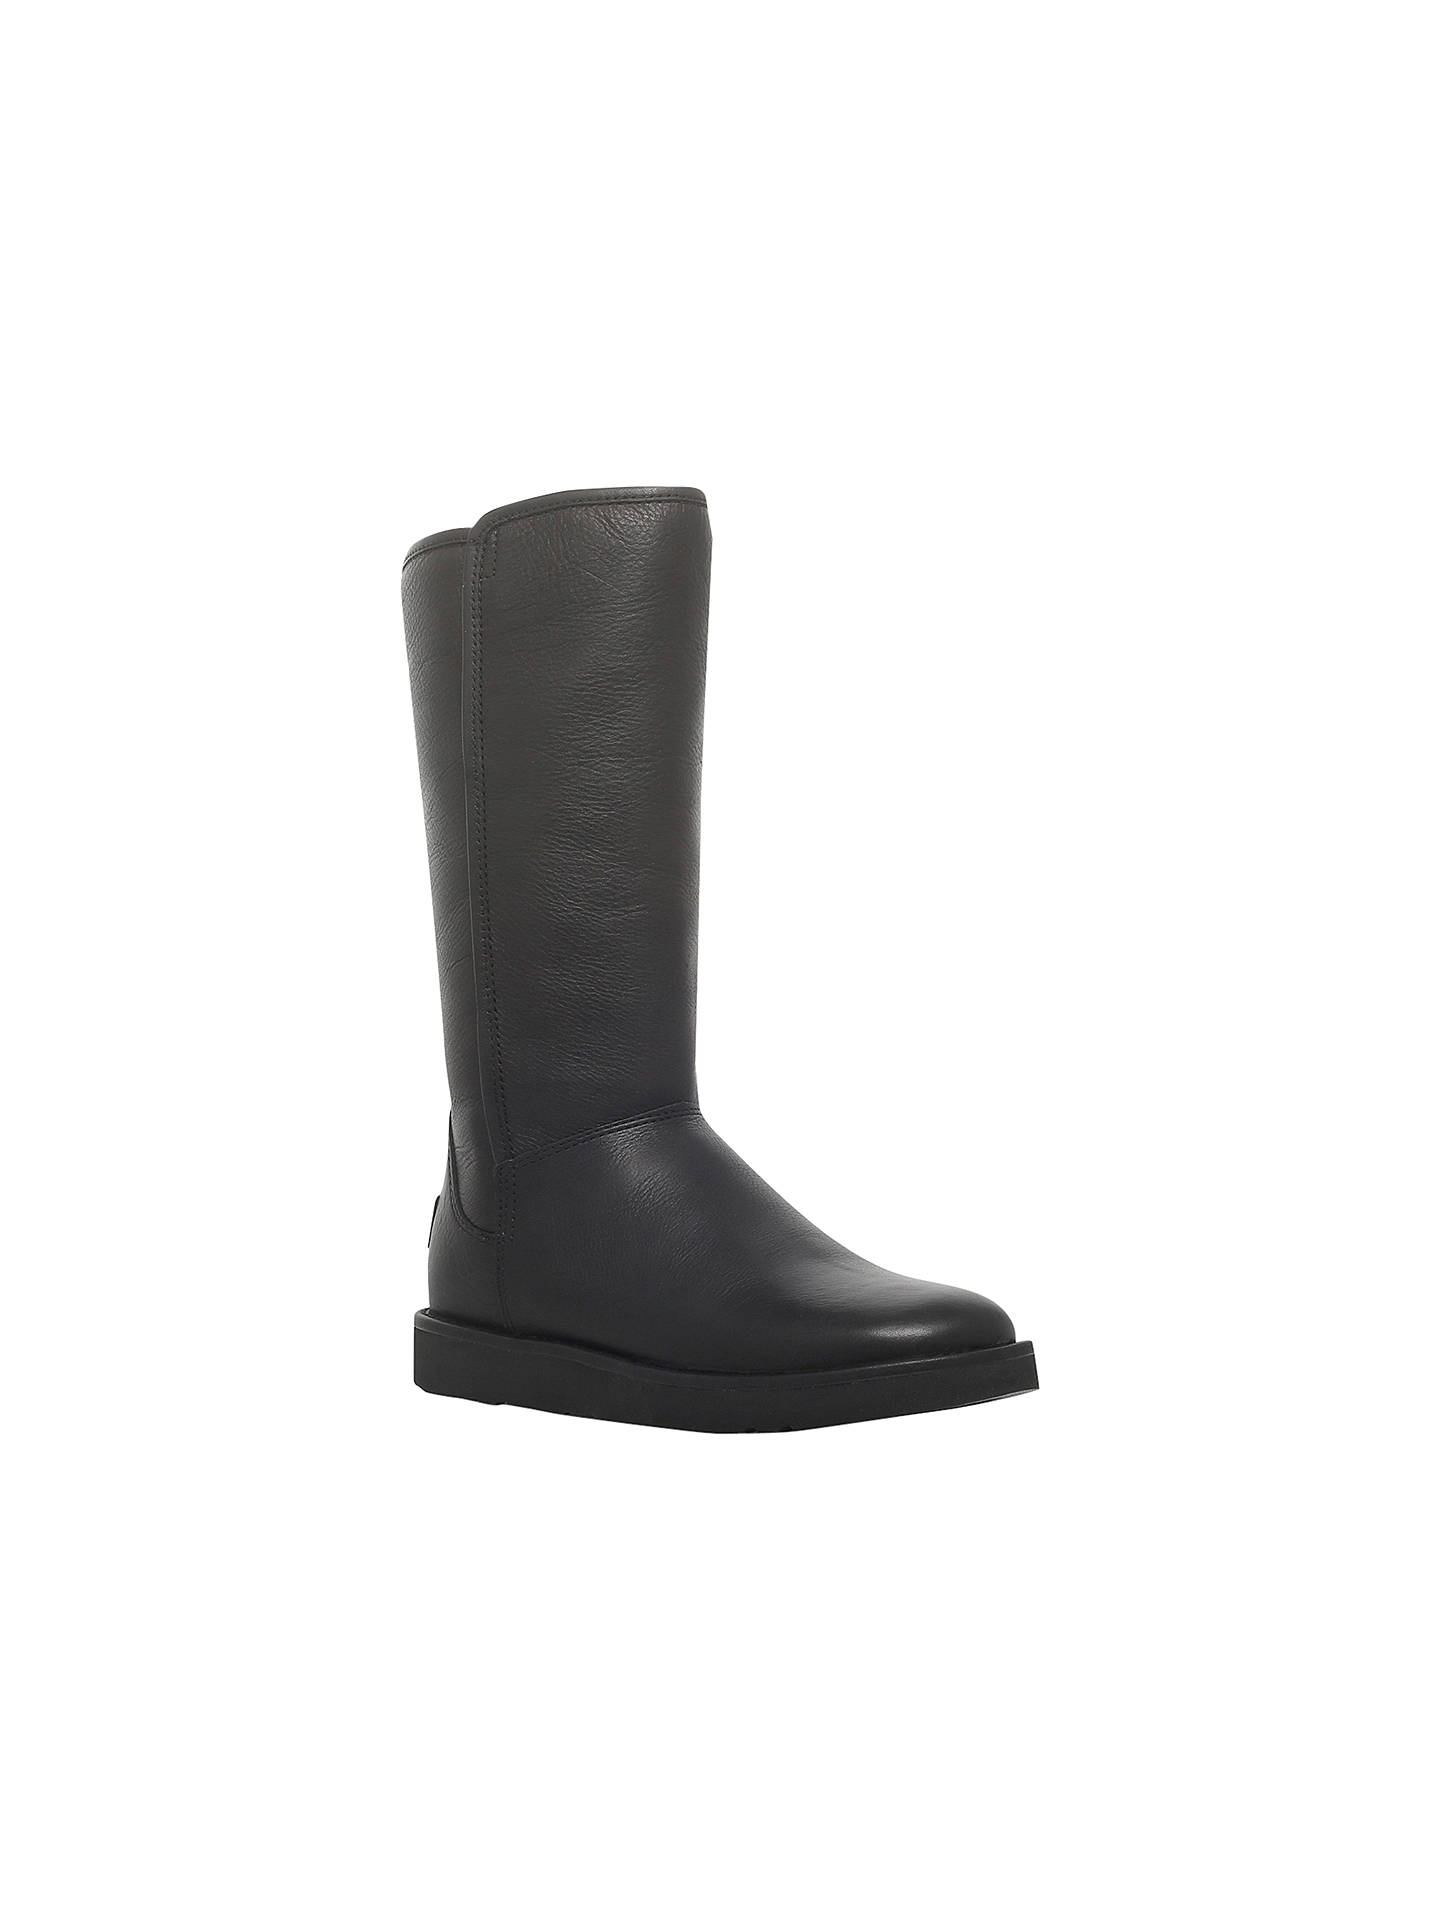 af3fa5c2c6c UGG Abree II Knee High Boots, Black at John Lewis & Partners